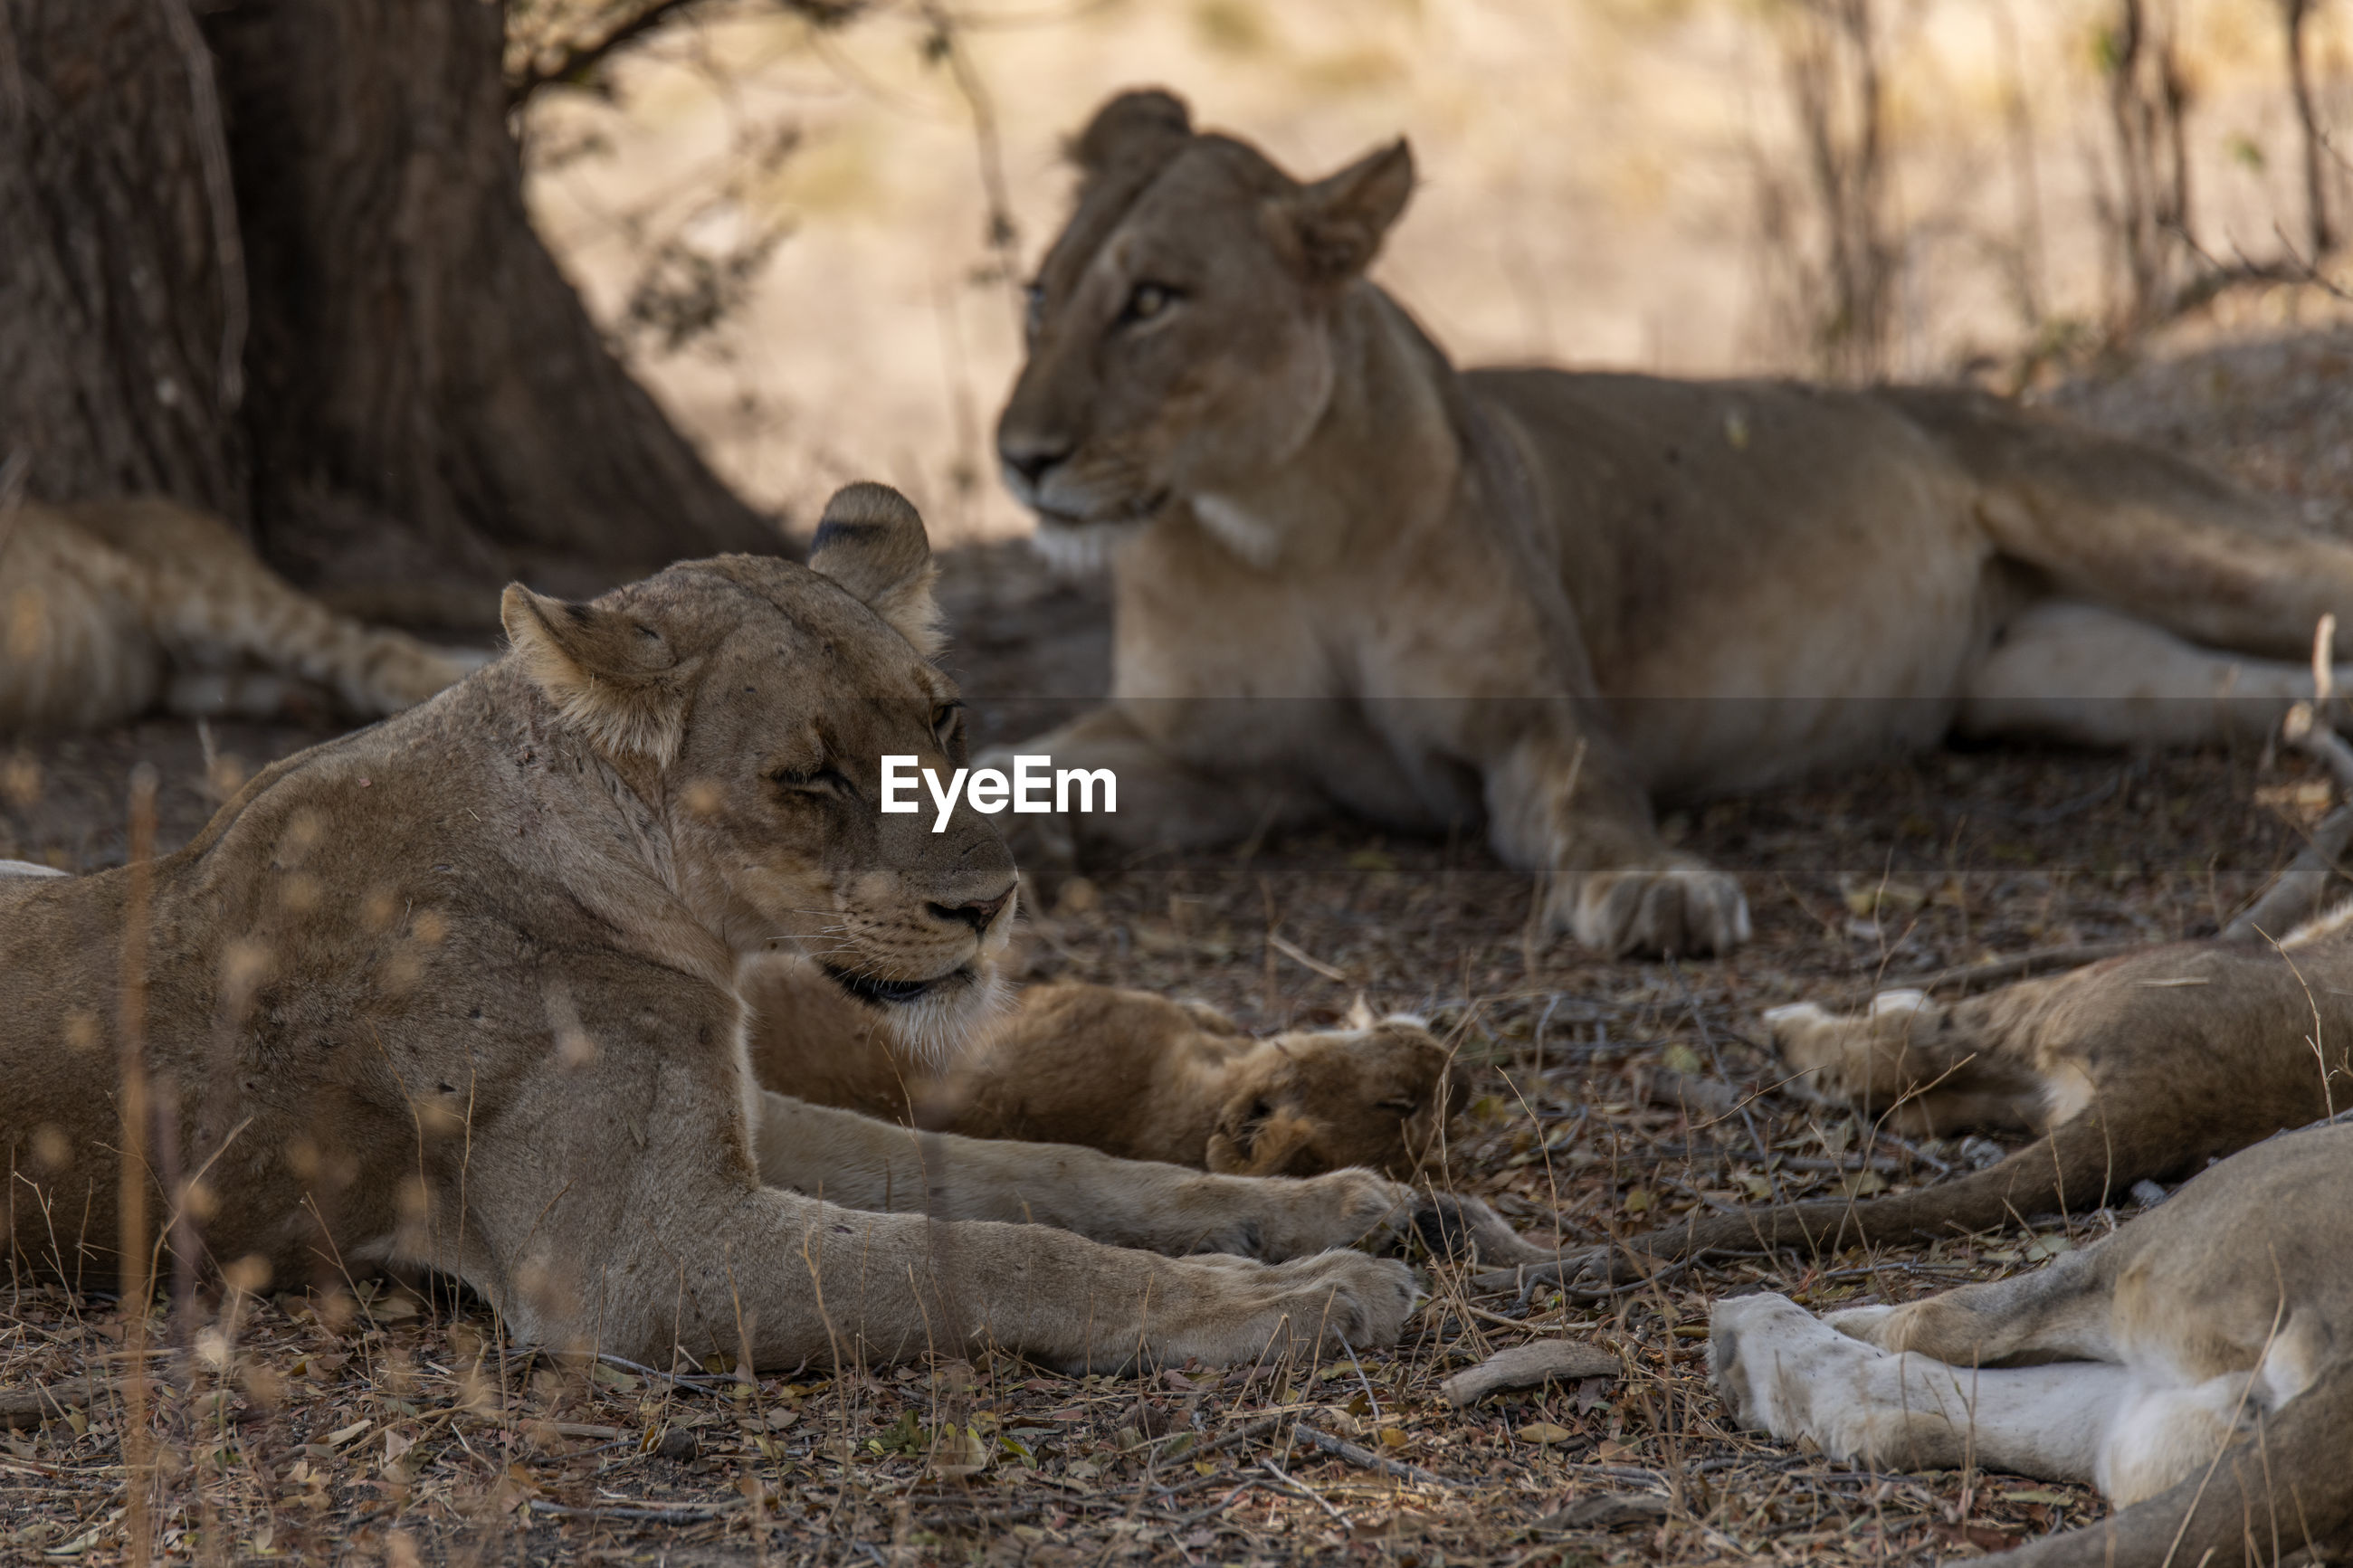 Lion family on field in forest